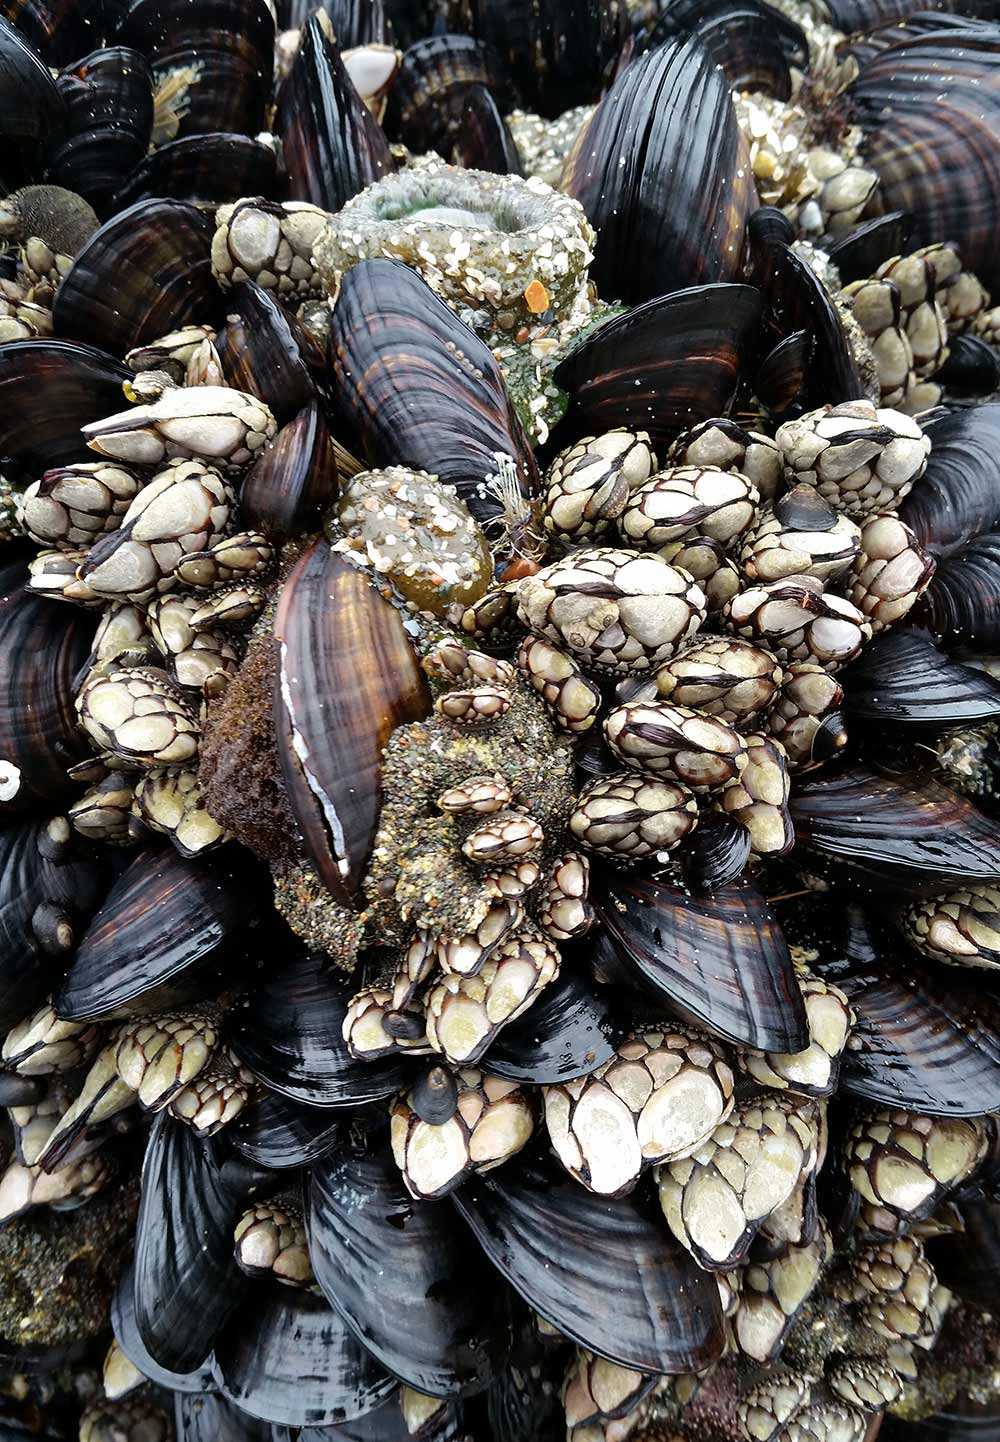 Pacific mussels and gooseneck barnacles